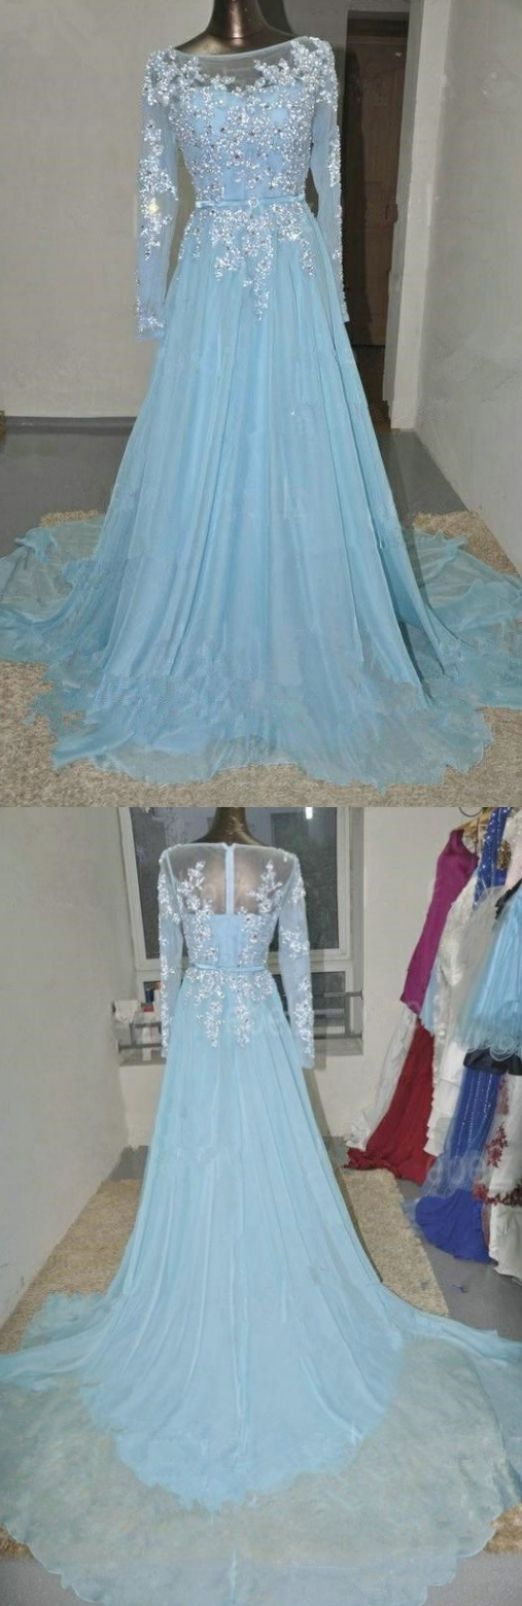 Cathedral train prom dresses blue cathedral train prom dresses